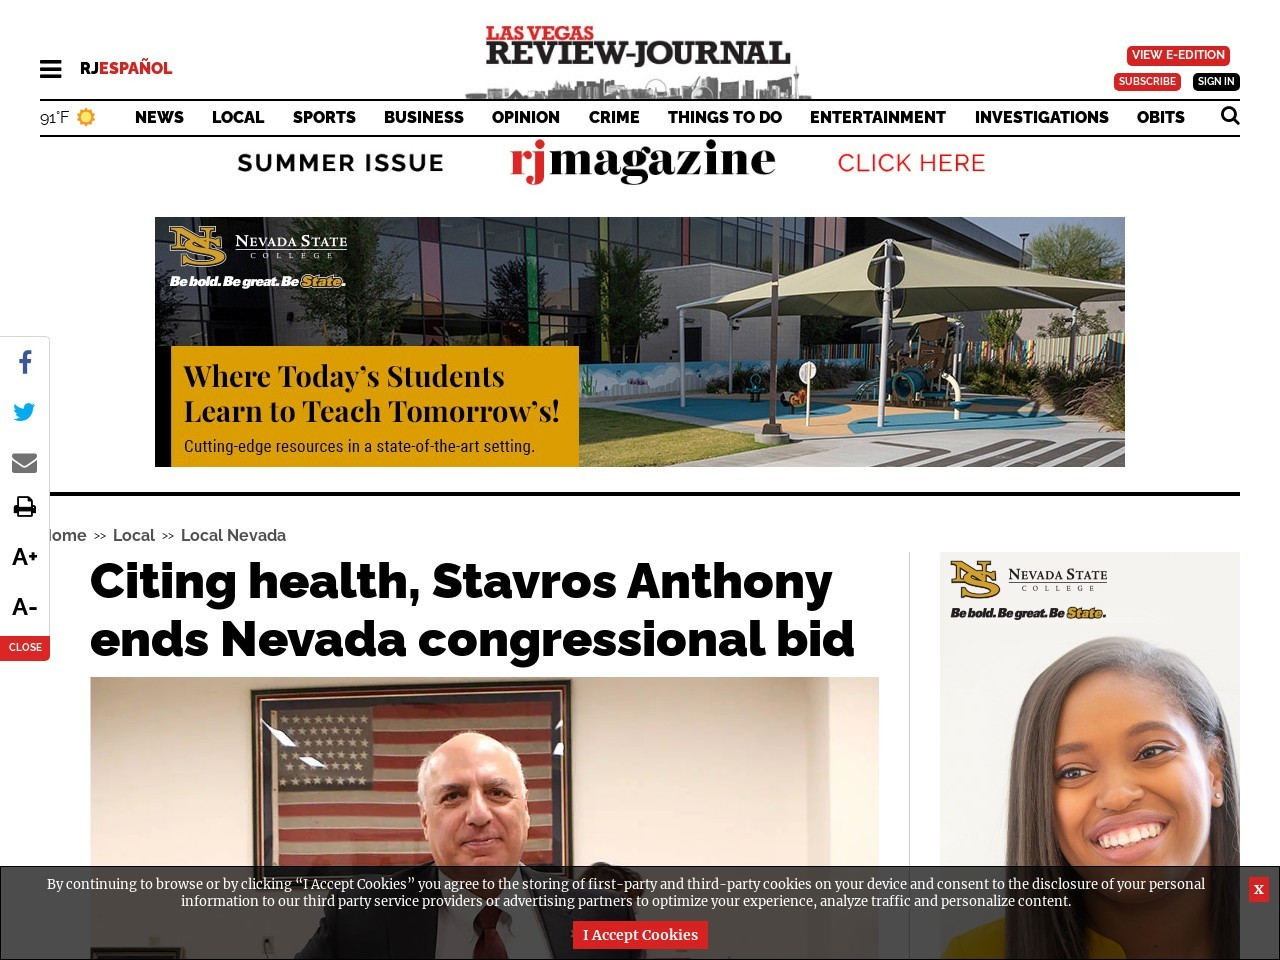 Citing health, Stavros Anthony ends Nevada congressional bid